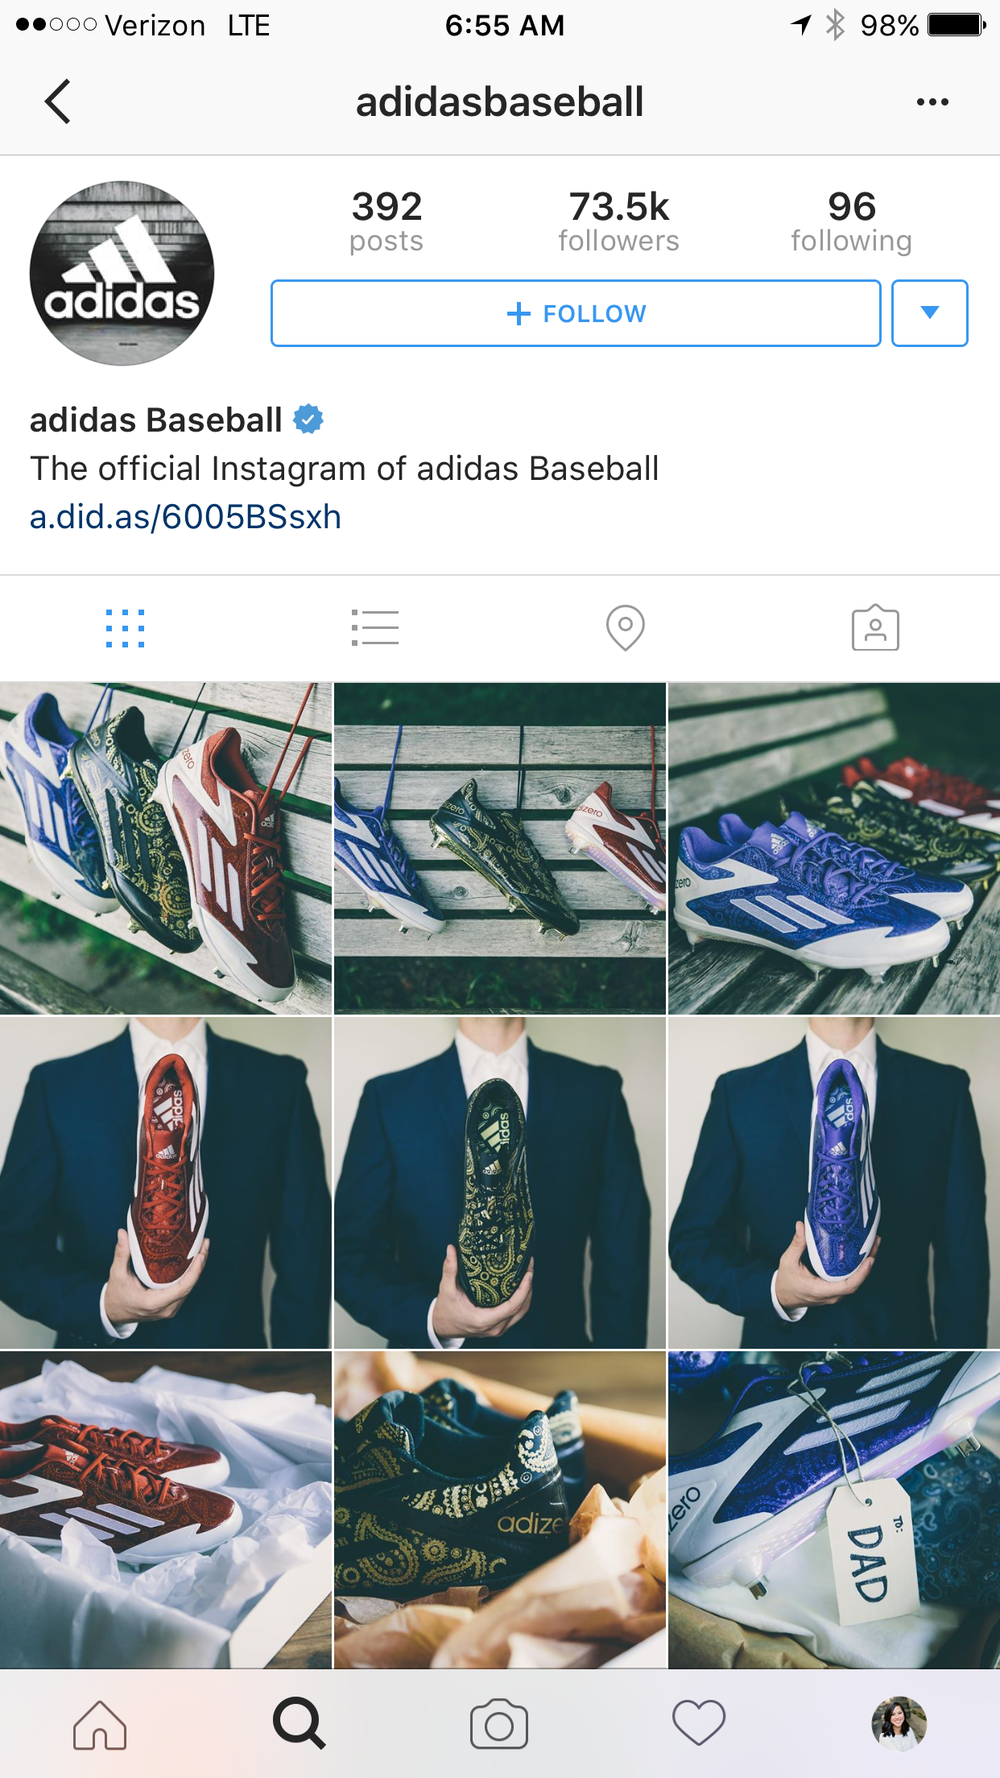 adidas Baseball Instagram Page: Father's Day Cleats - June 2016